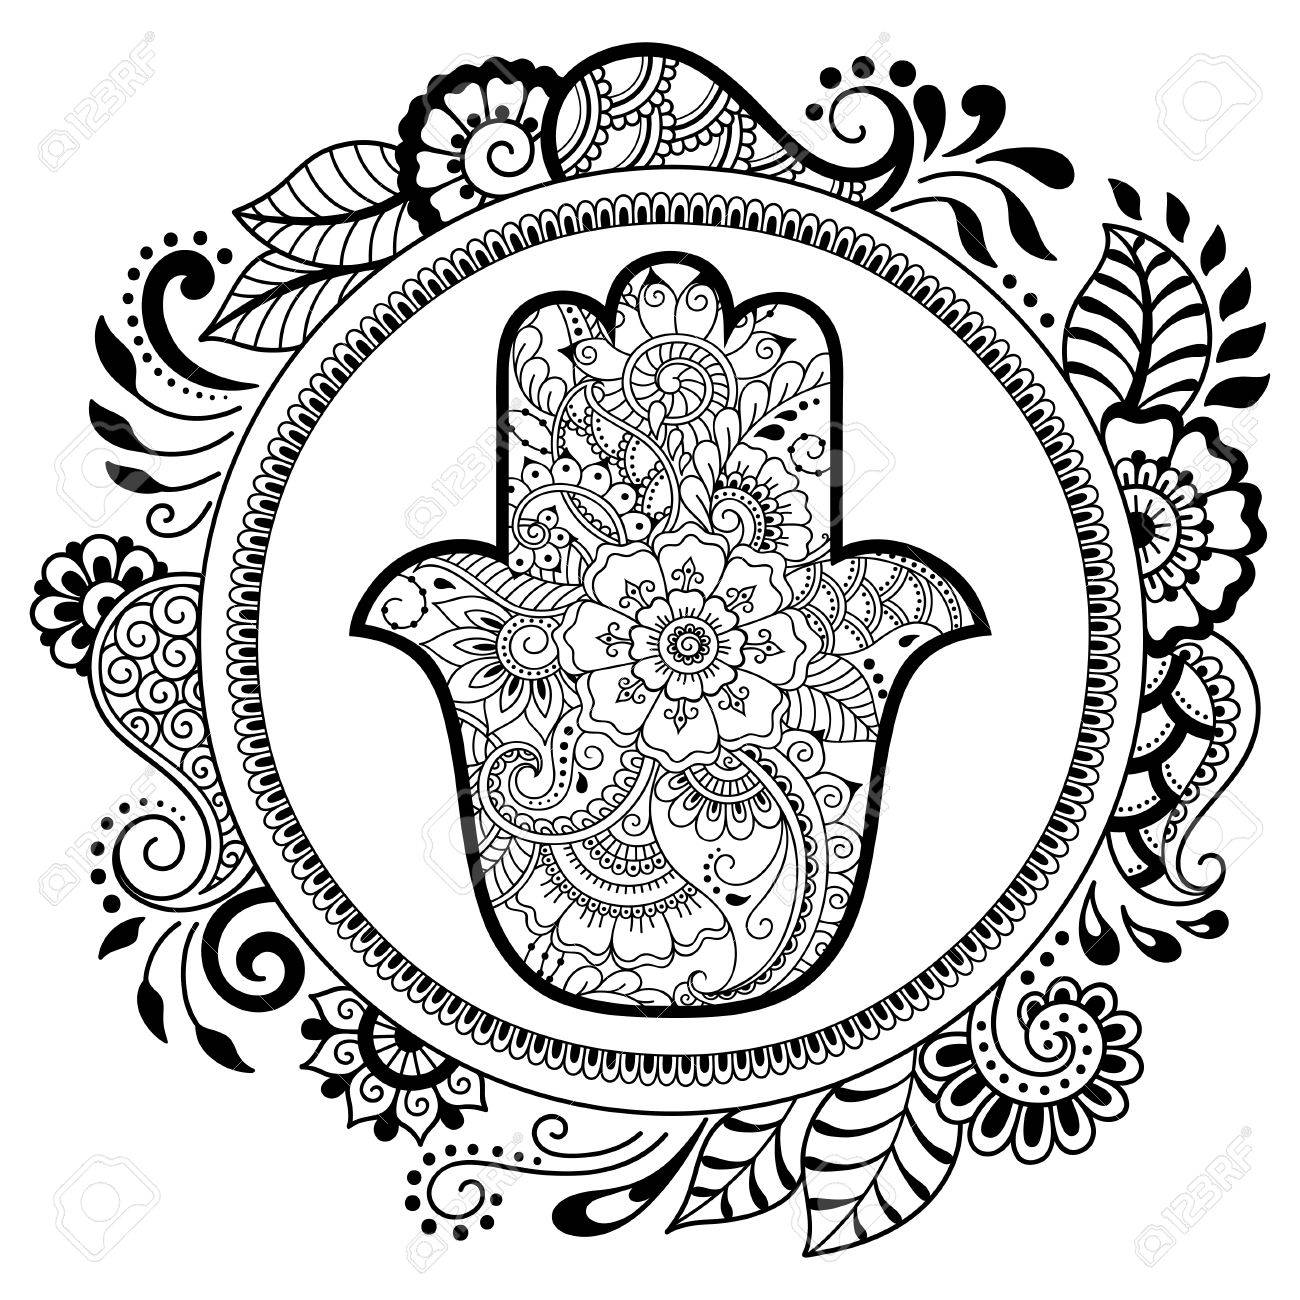 cff4dc66b Hamsa hand drawn symbol in mandala. Mehndi style. Decorative pattern in  oriental style.